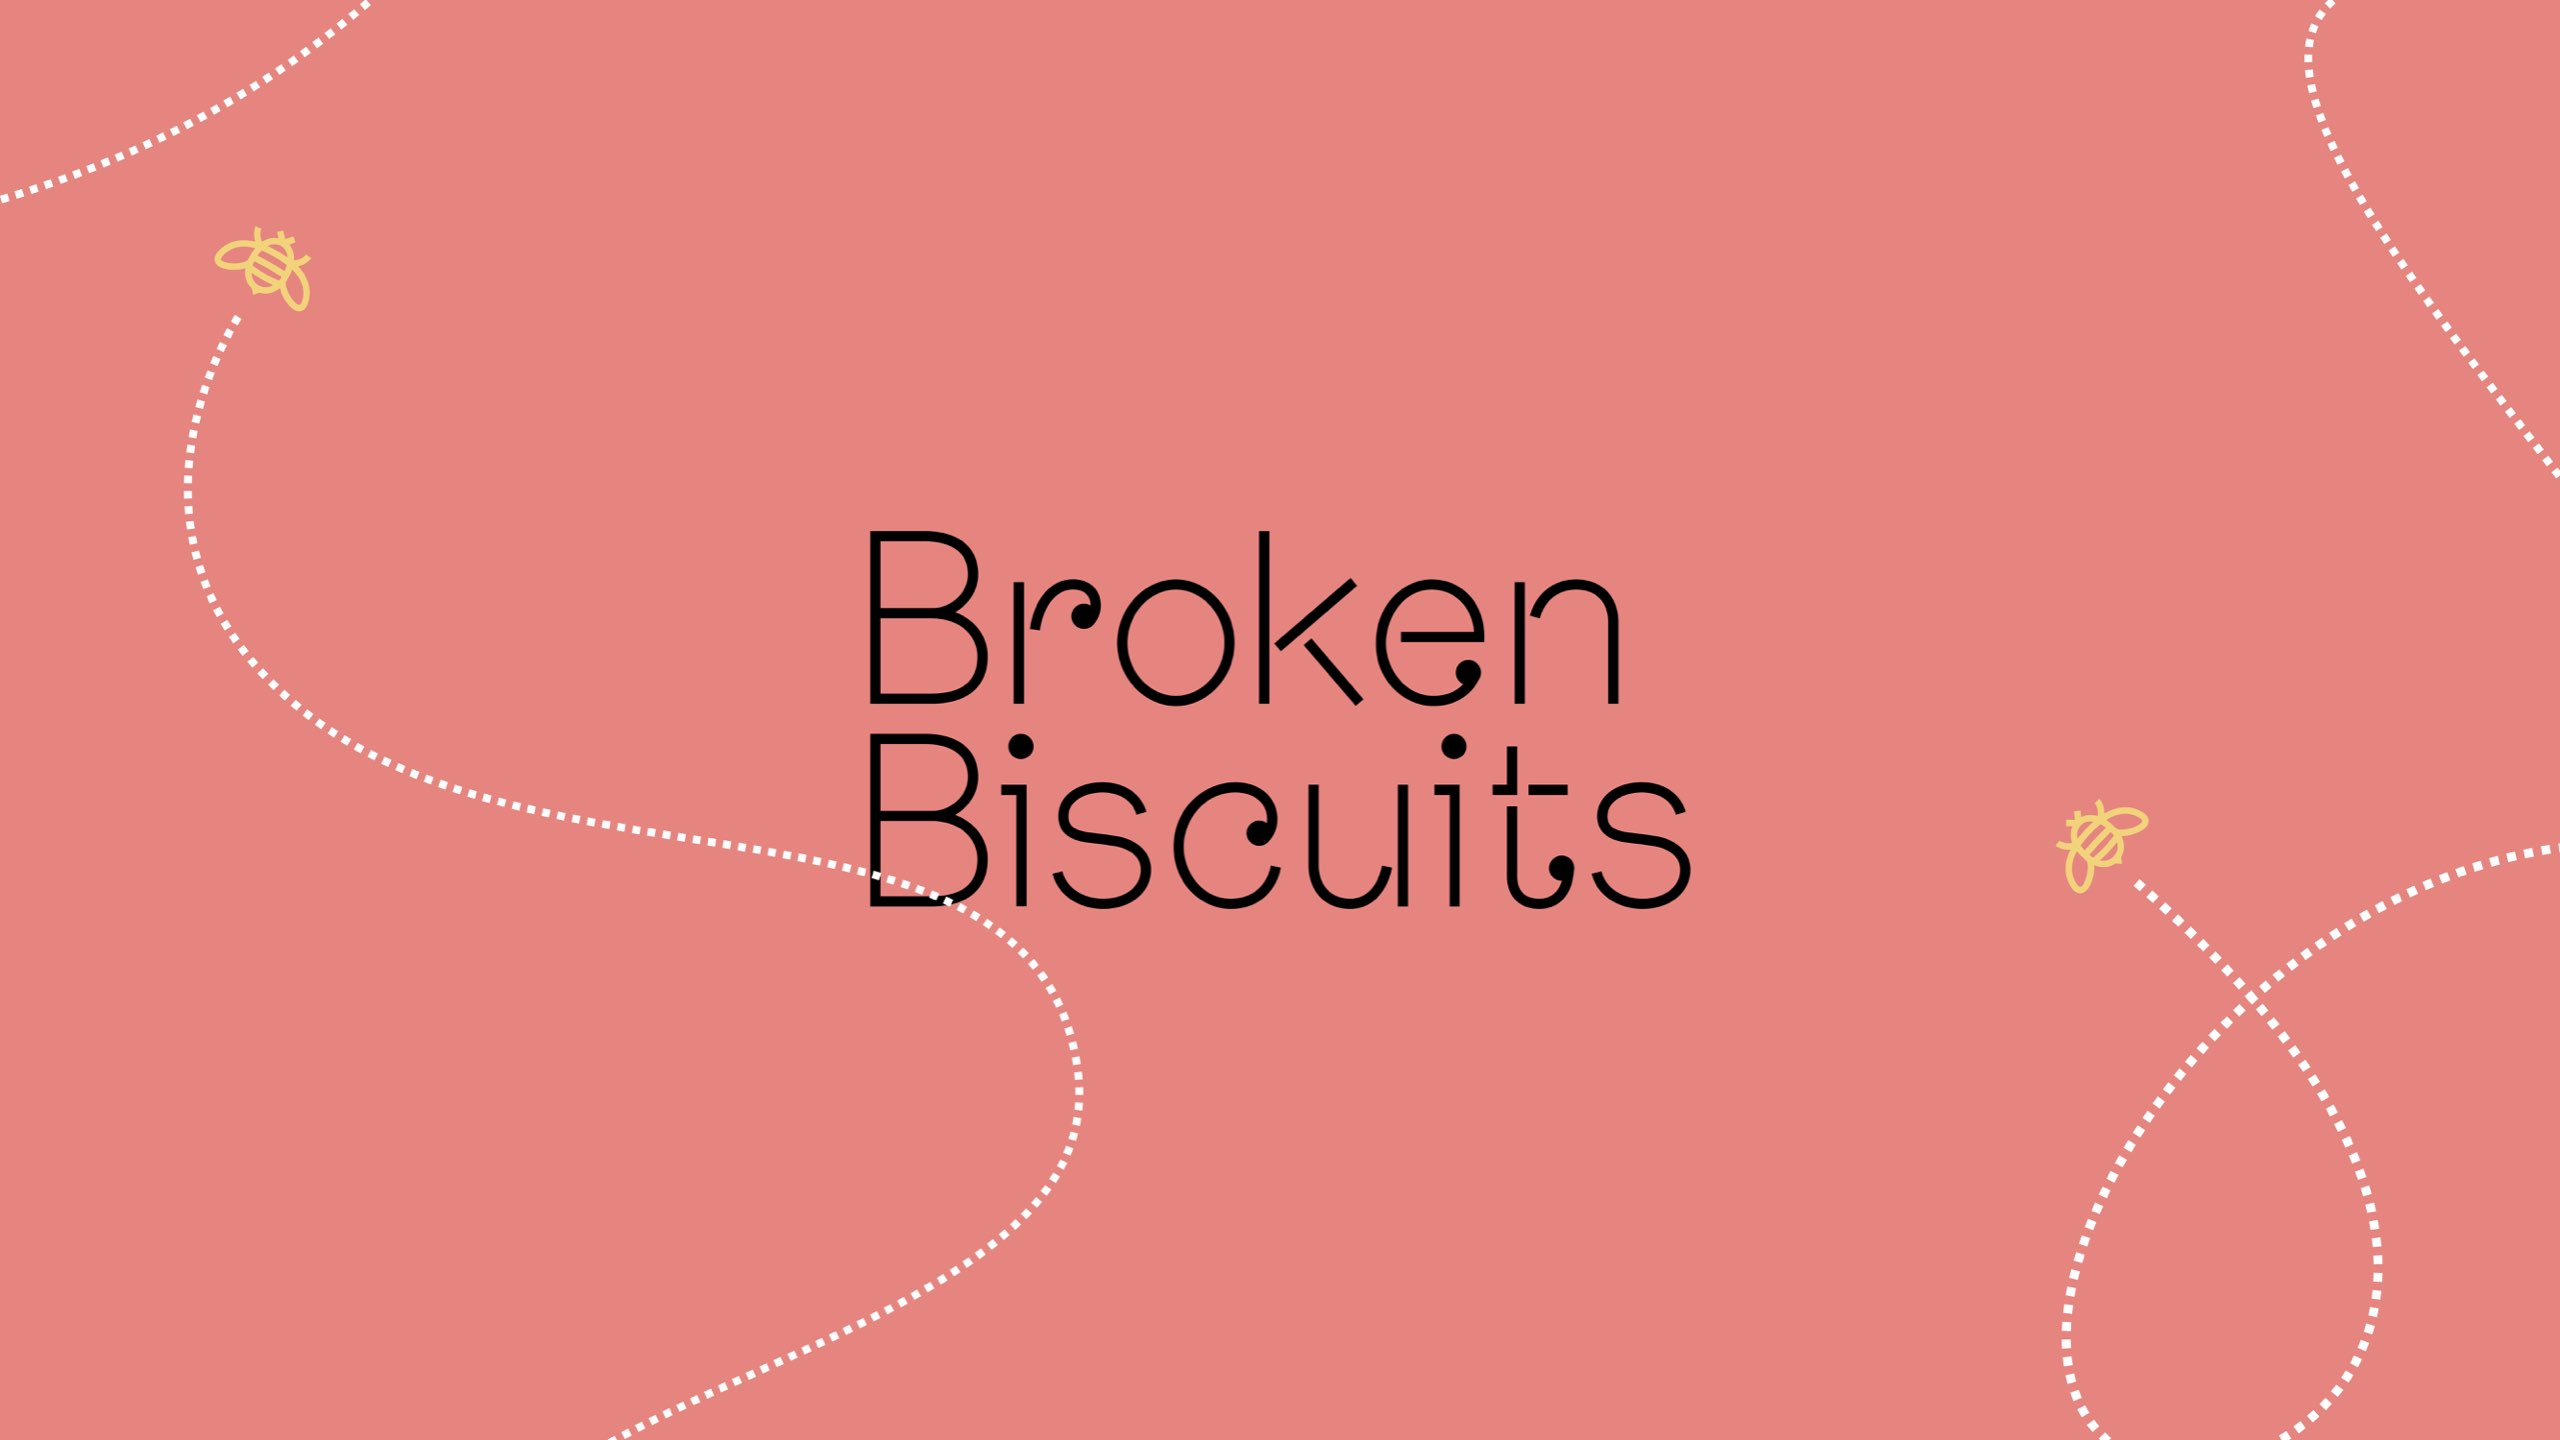 Cover image: Broken Biscuits